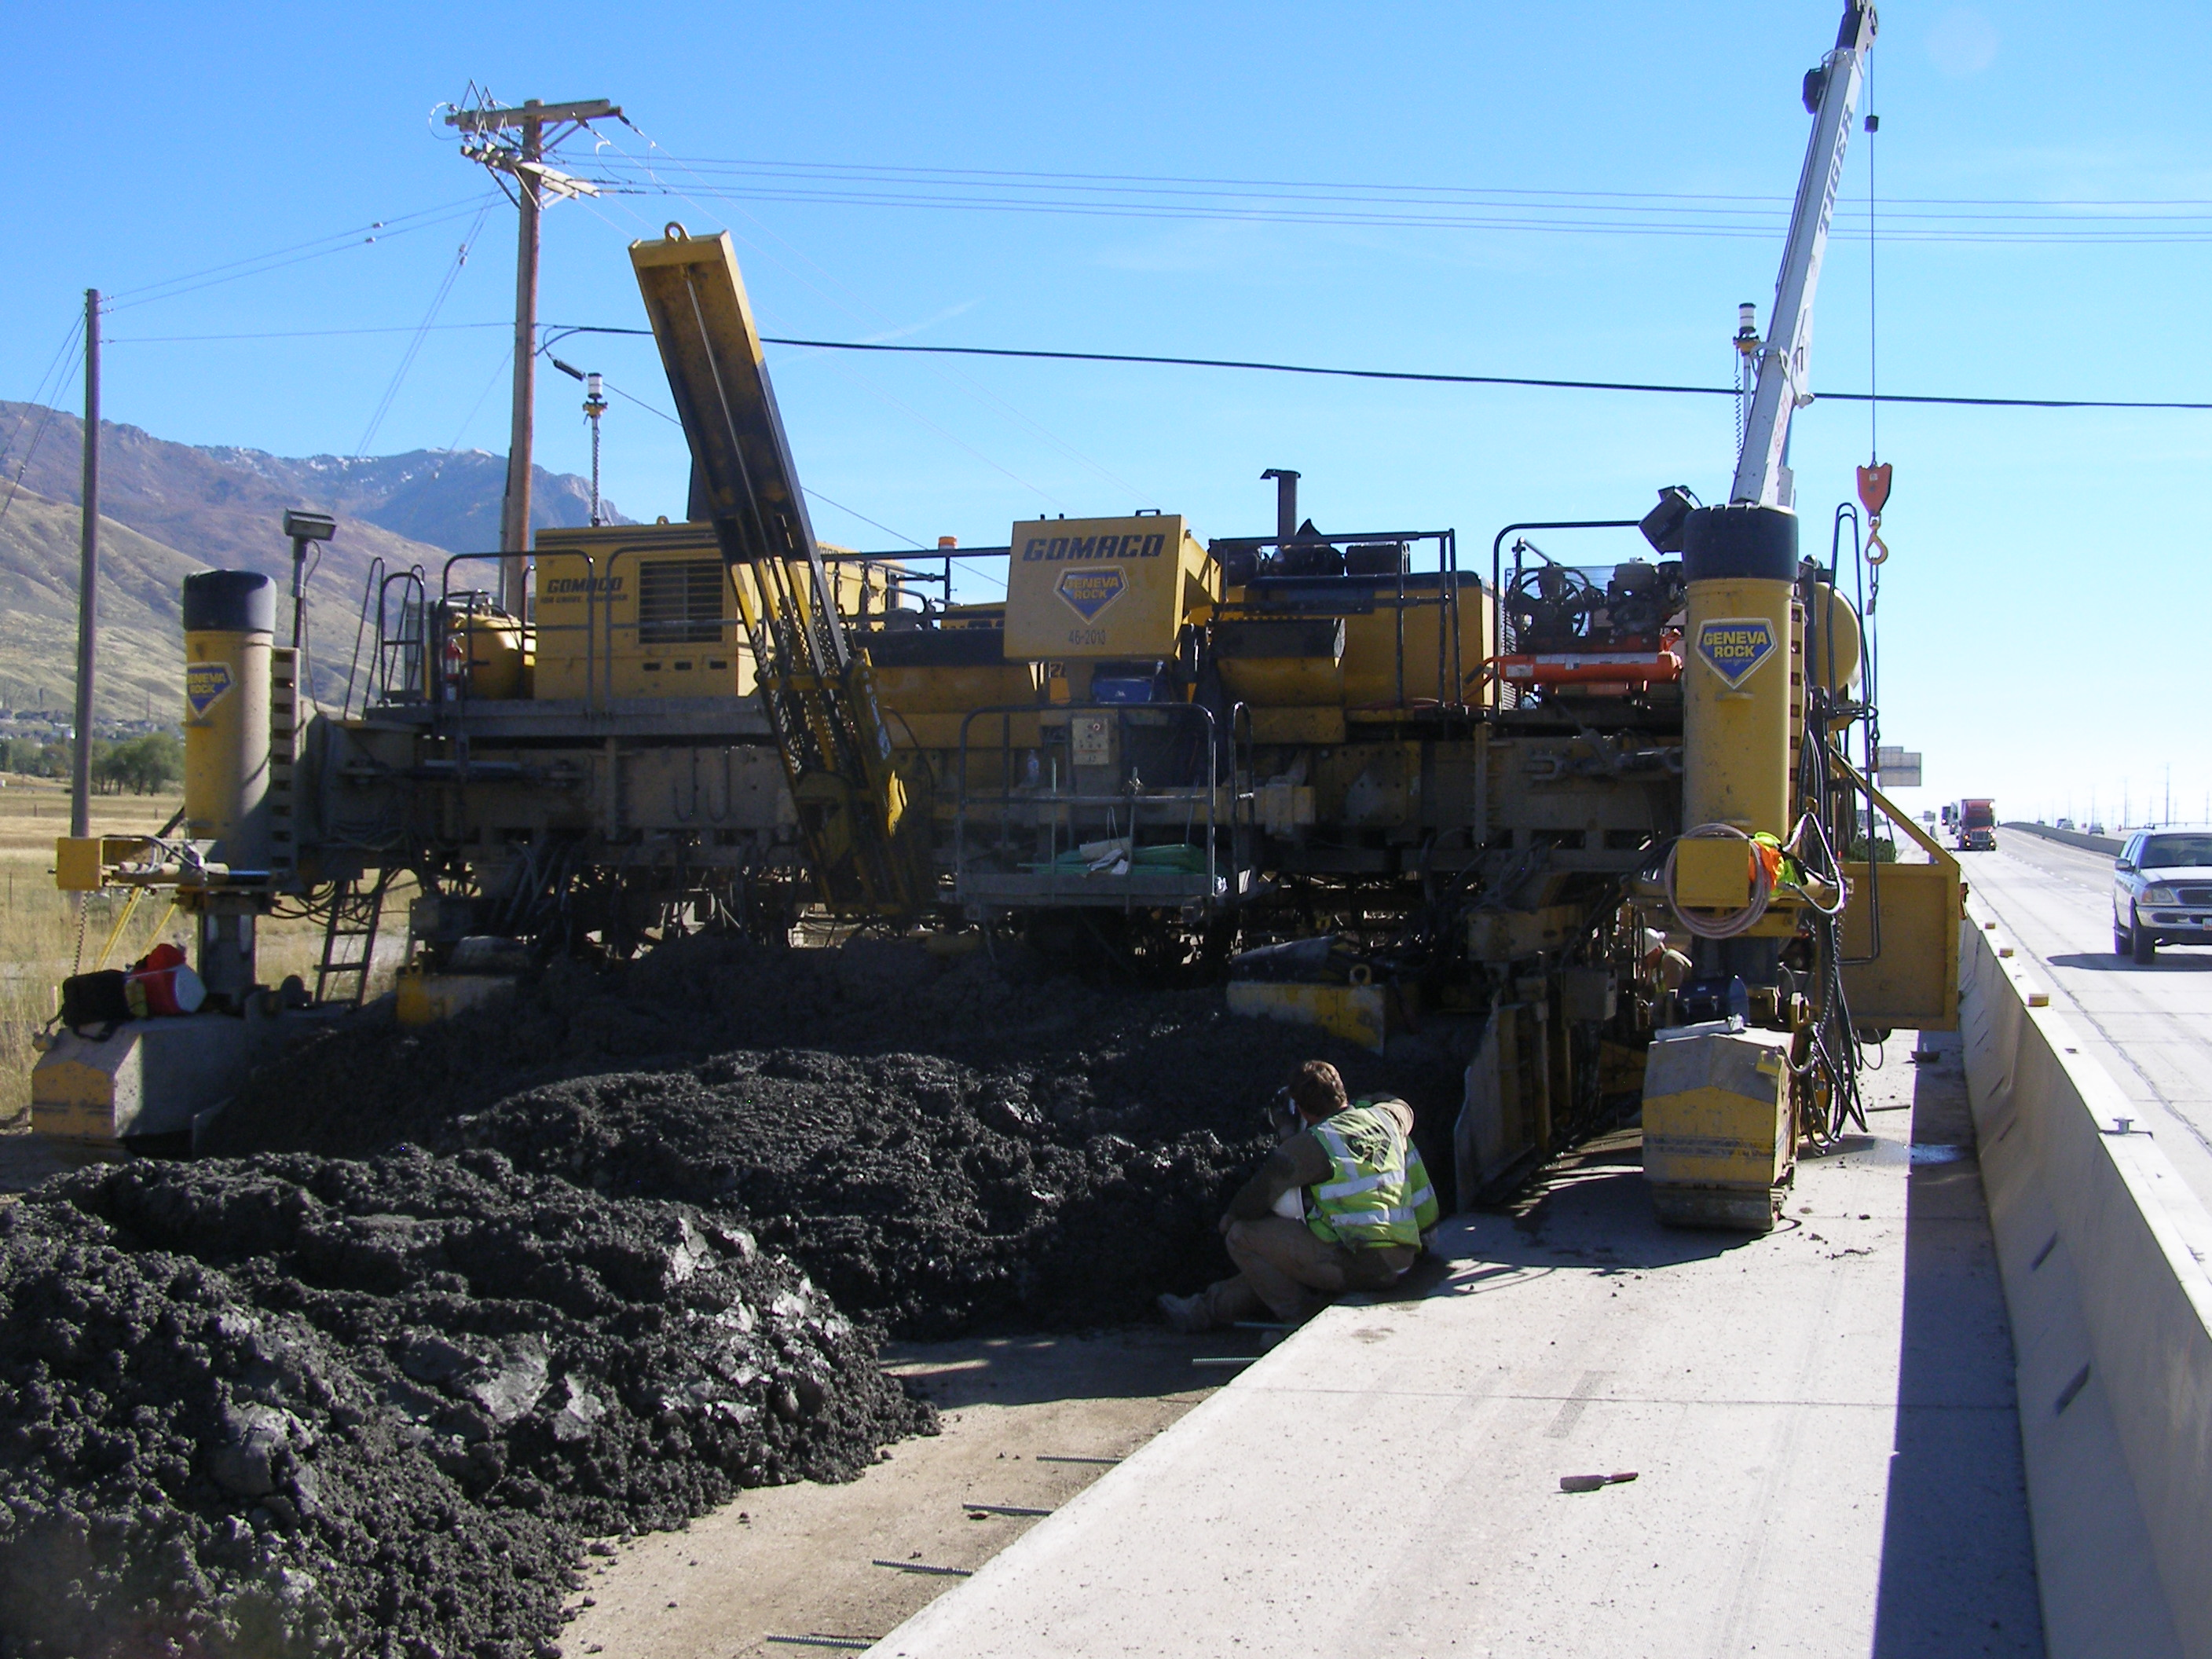 A construction worker was left in critical condition after getting caught in a concrete paver while working in an Interstate 15 construction zone near Exit 362, Box Elder County, Utah, Oct. 7, 2016 | Photo courtesy of Utah Highway Patrol, St. George News